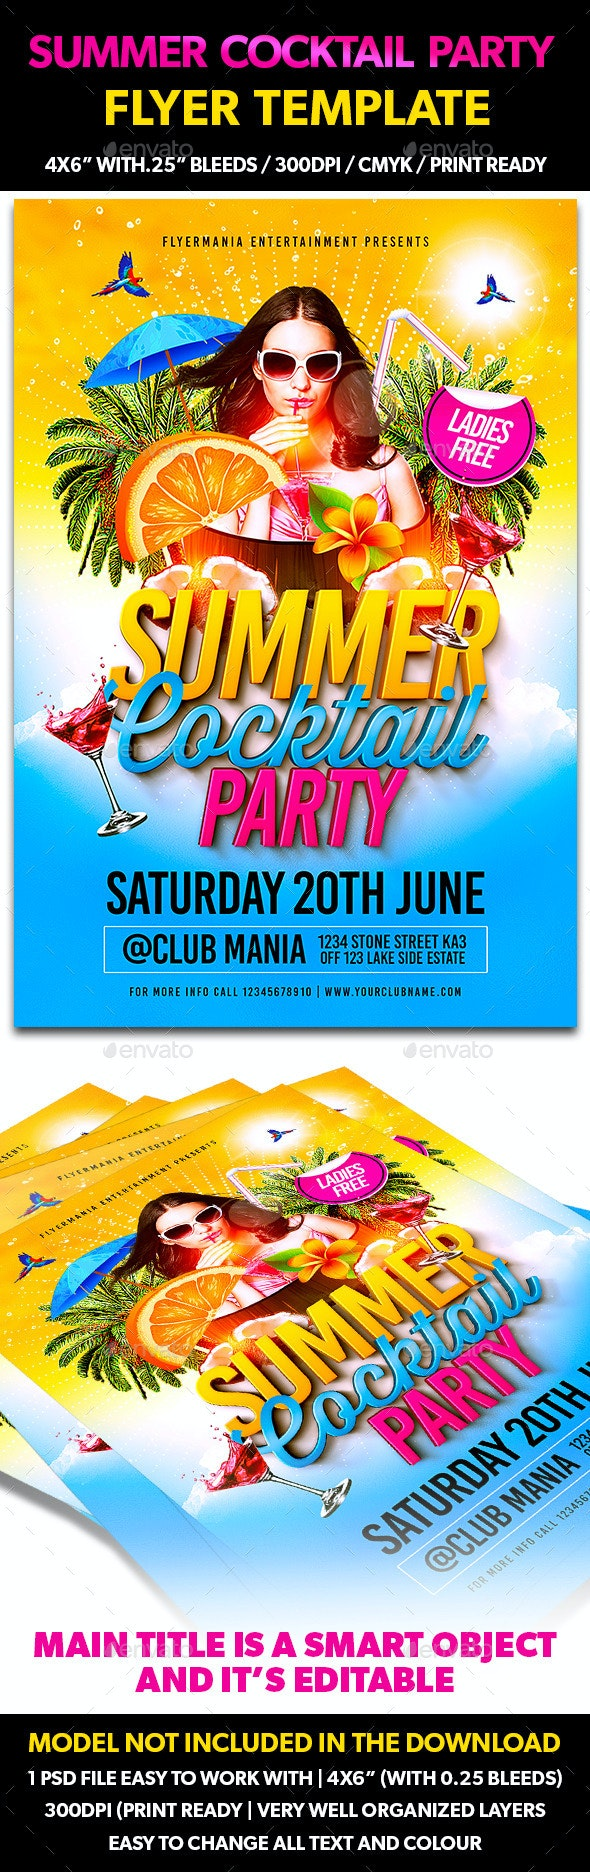 Summer Cocktail Party Flyer Template - Clubs & Parties Events